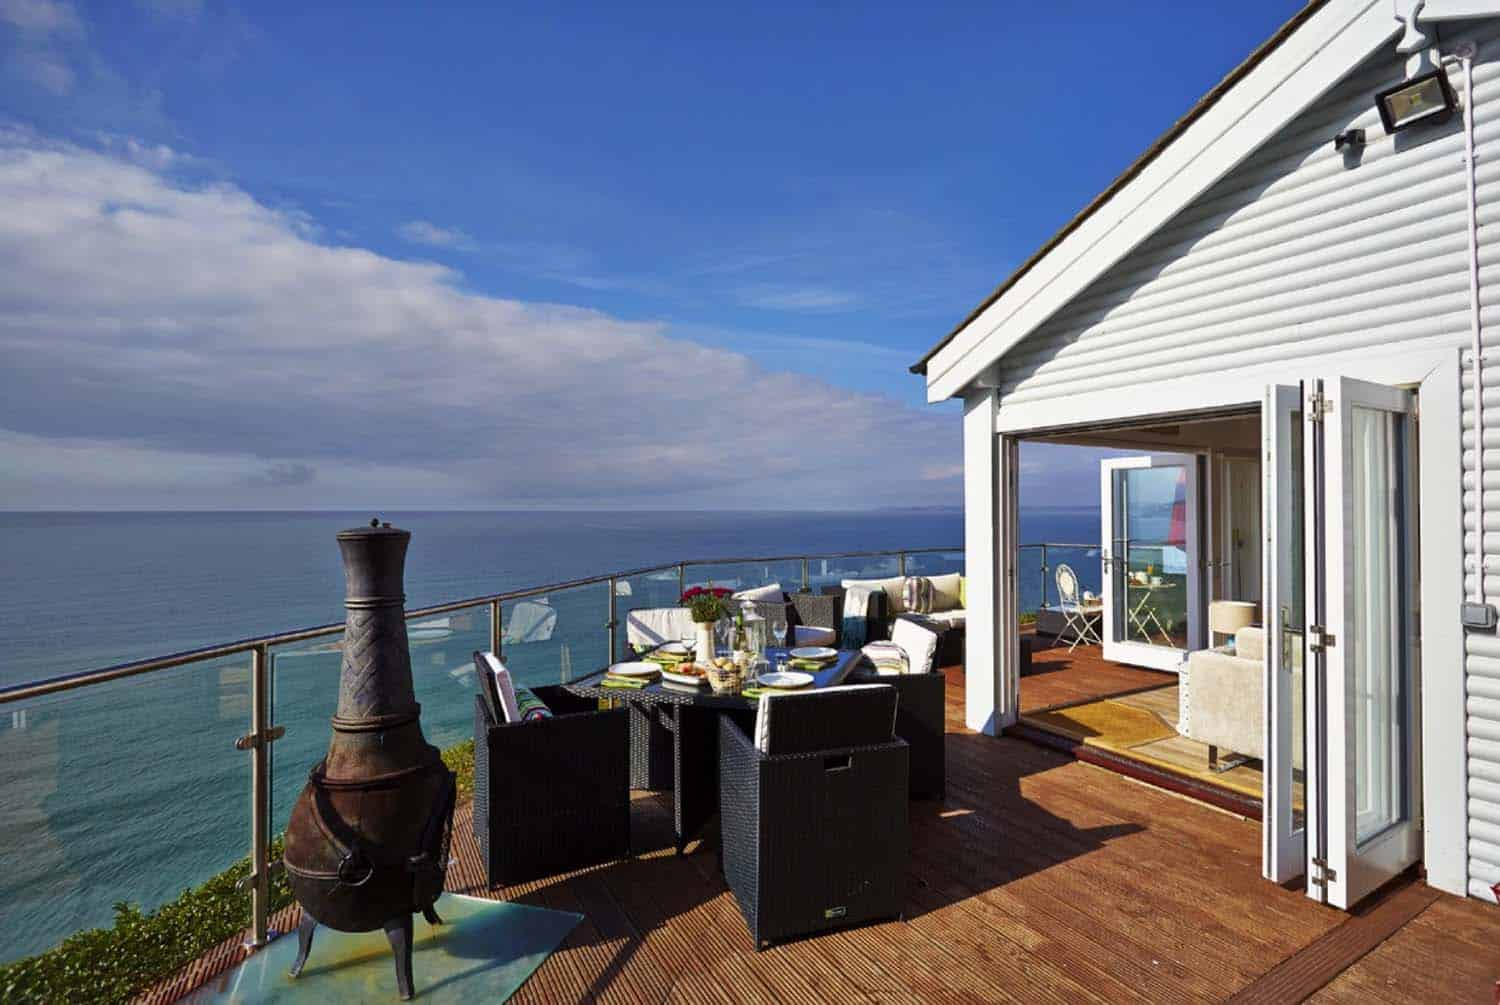 Moontide Beach Hut-Whitsand Bay-Cornwall-23-1 Kindesign